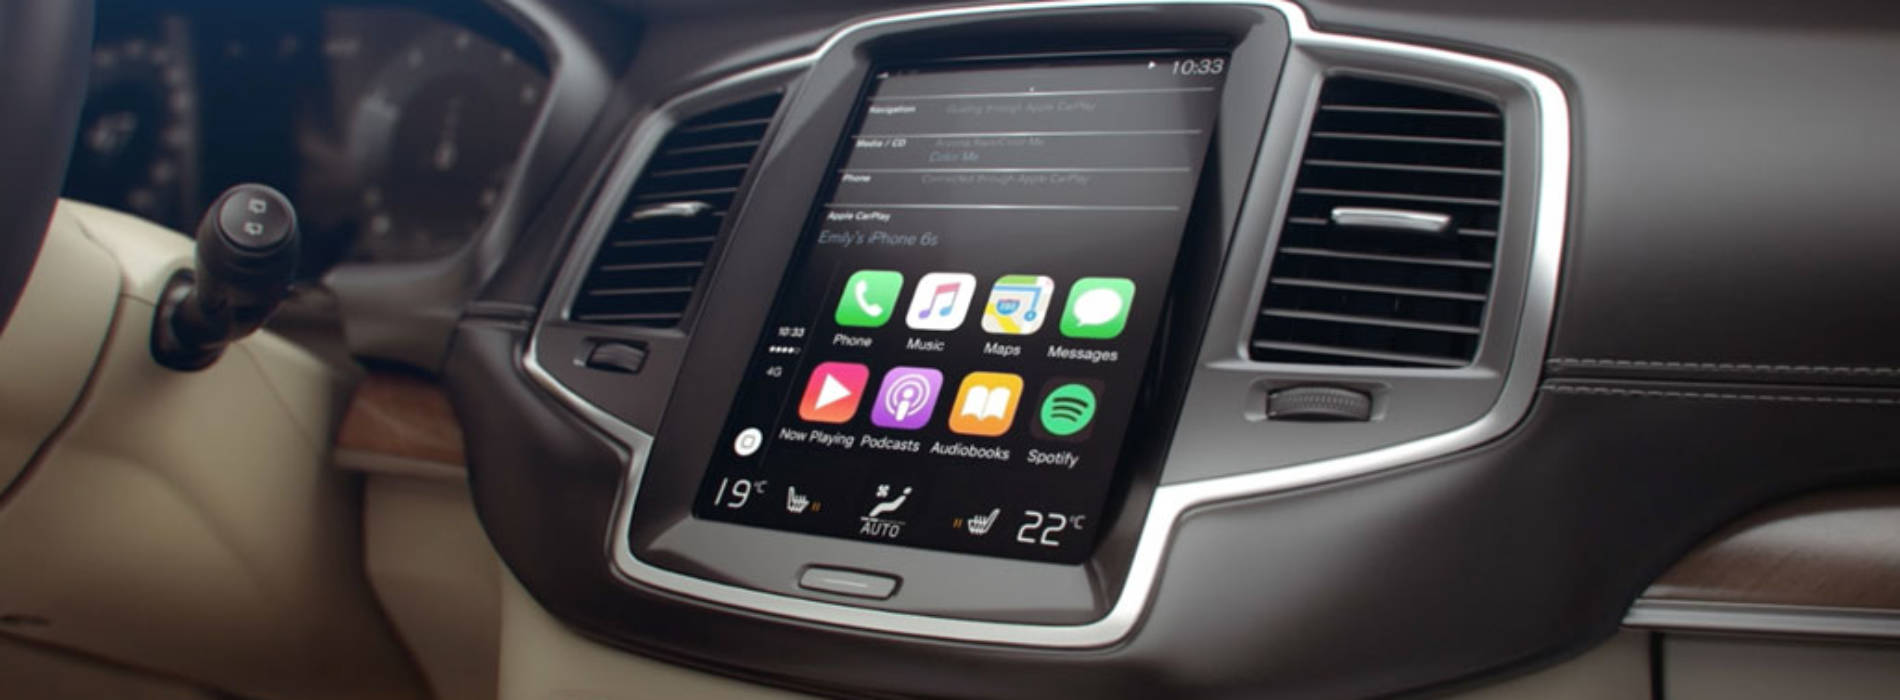 La gama Volvo ya incluye Apple CarPlay